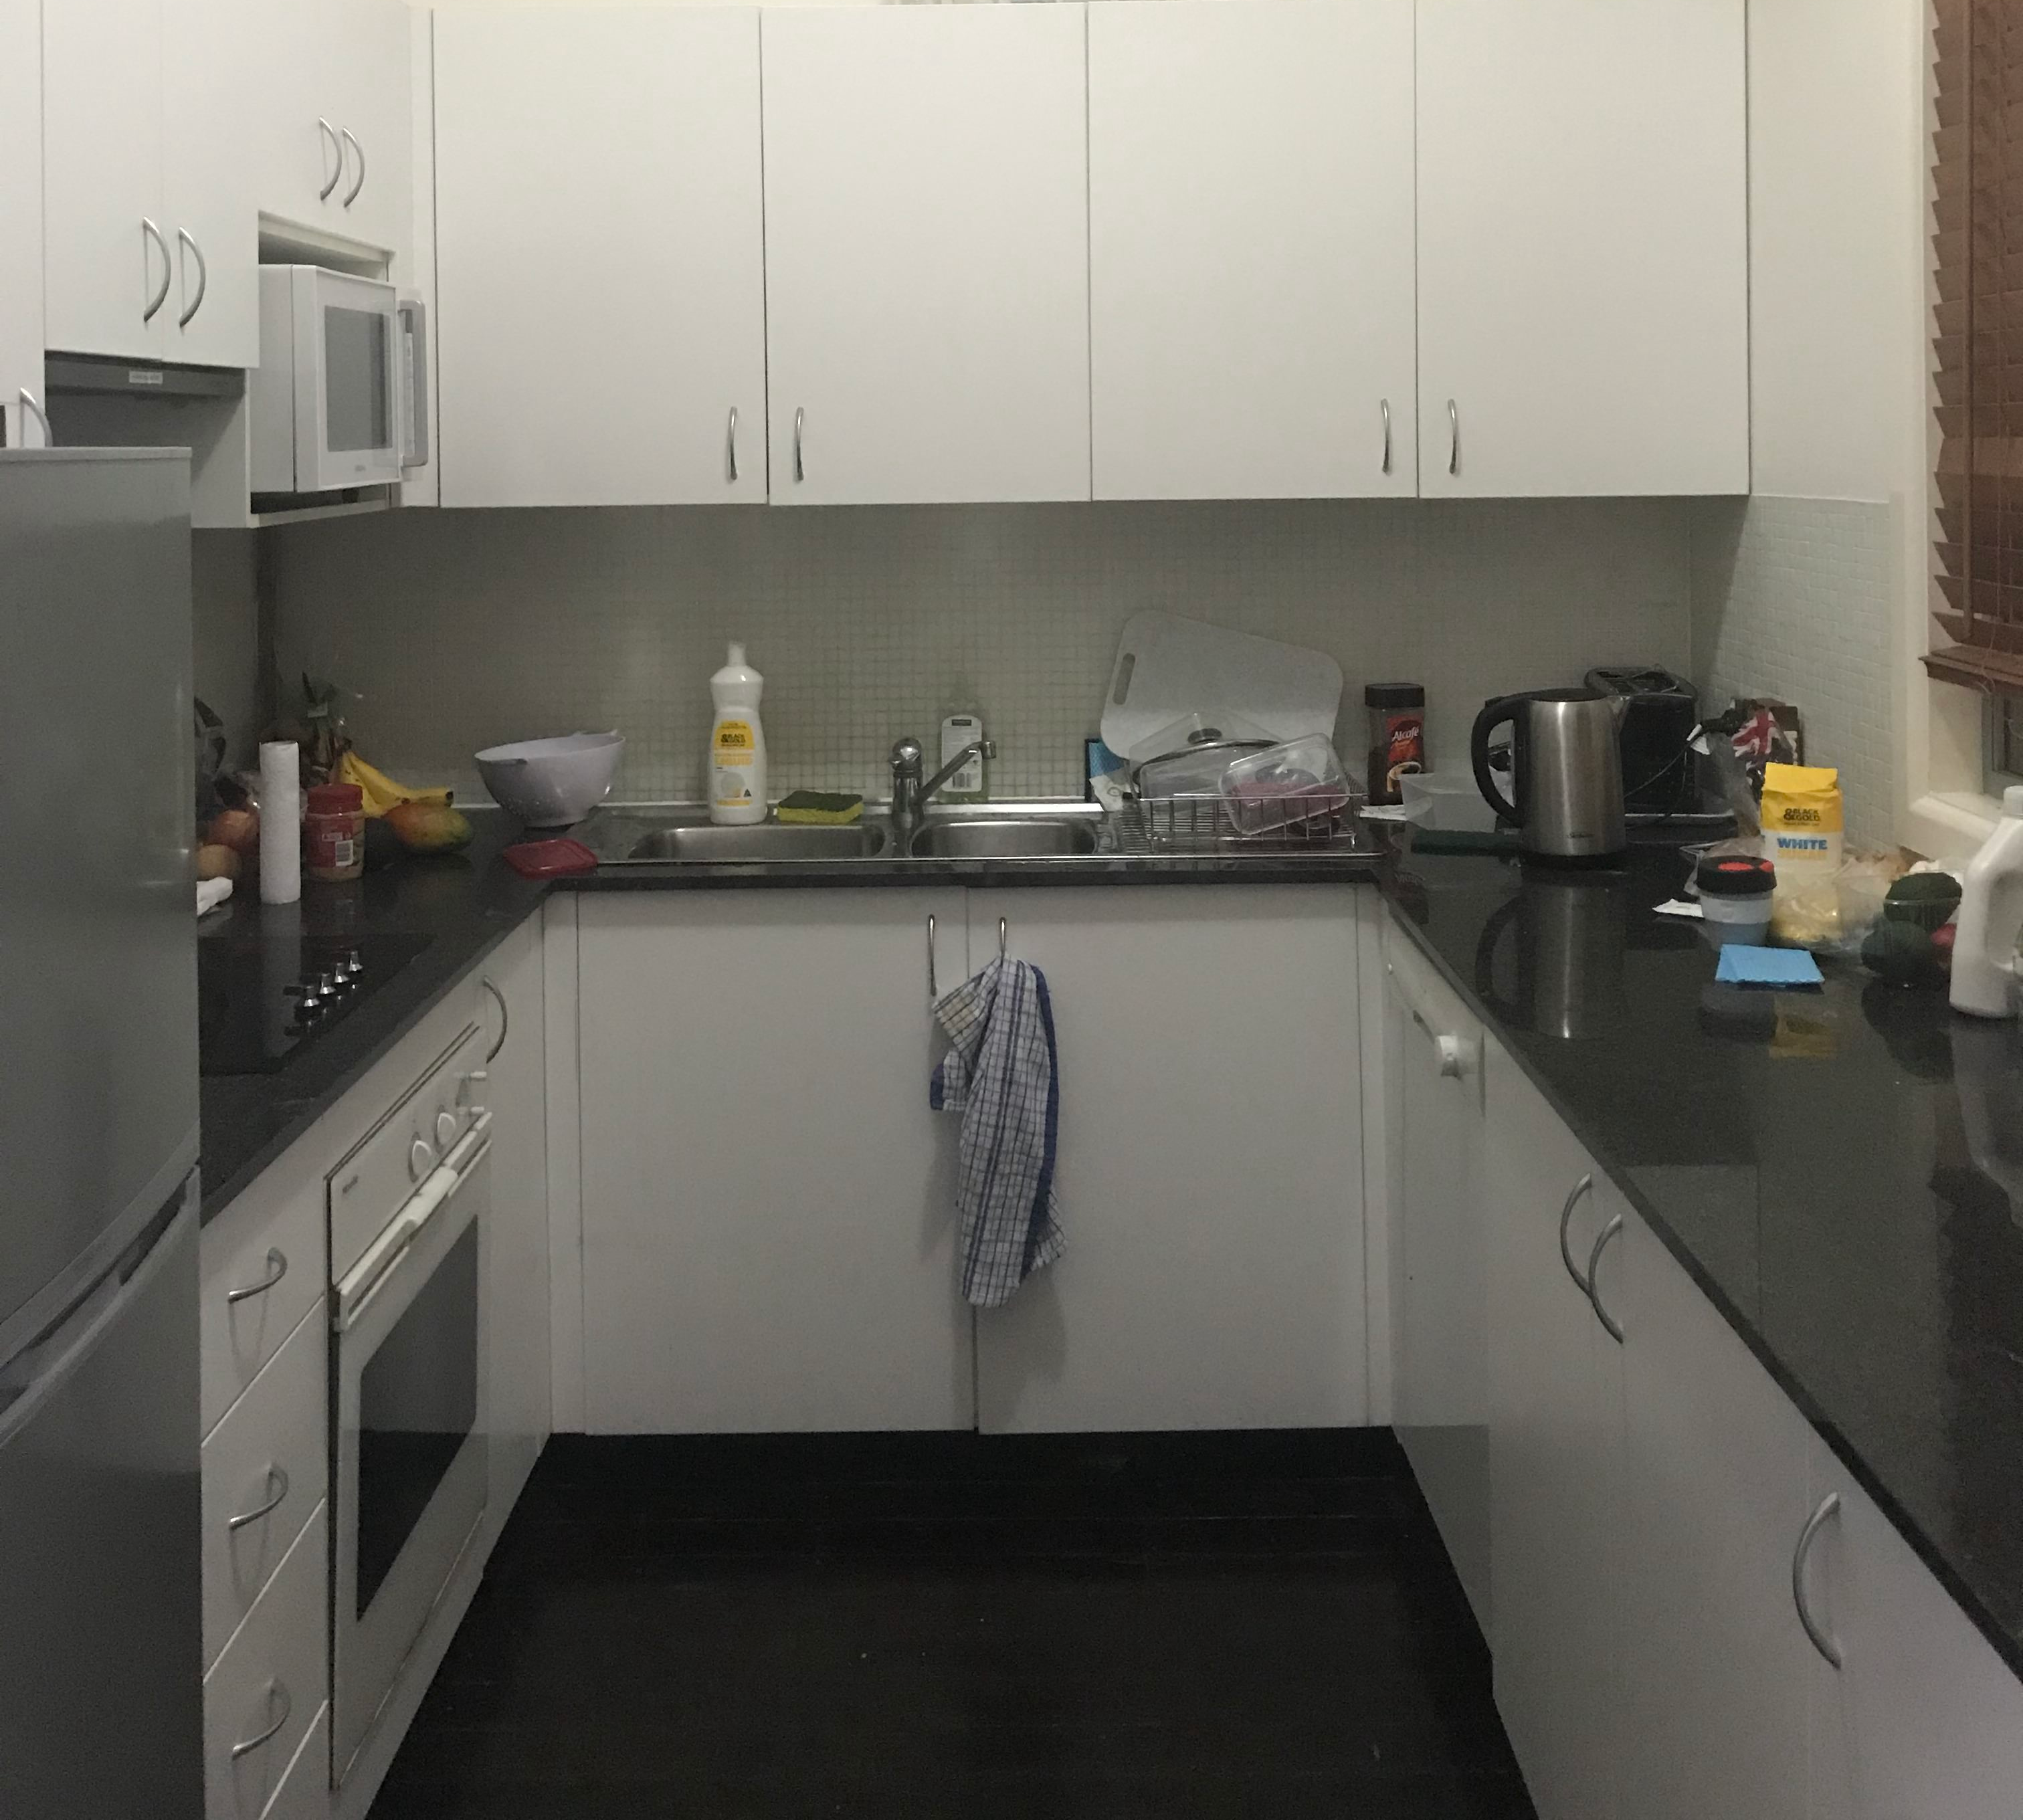 The smaller, enclosed kitchen